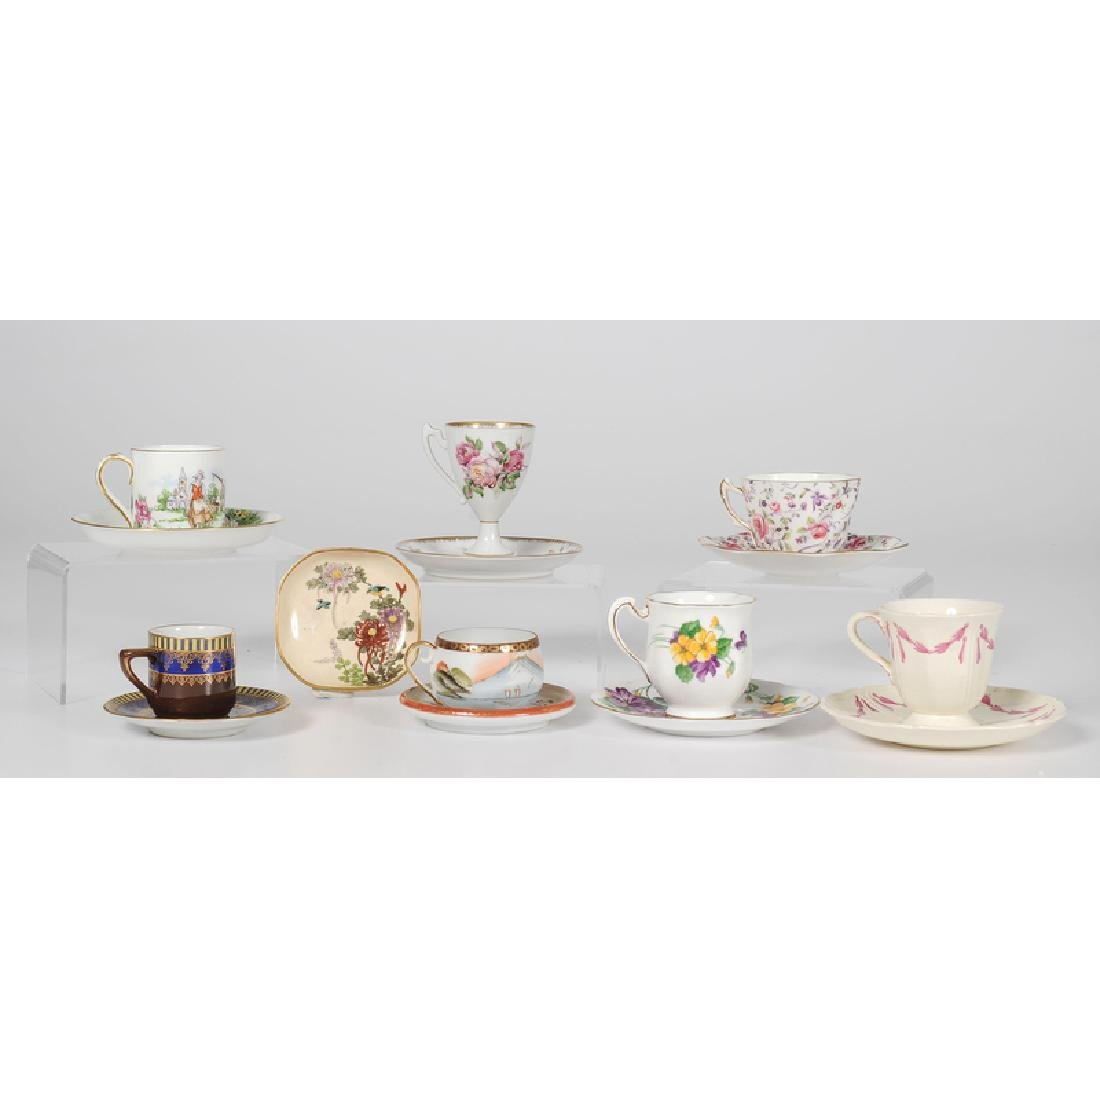 Assorted Collection of Teacups and Saucers